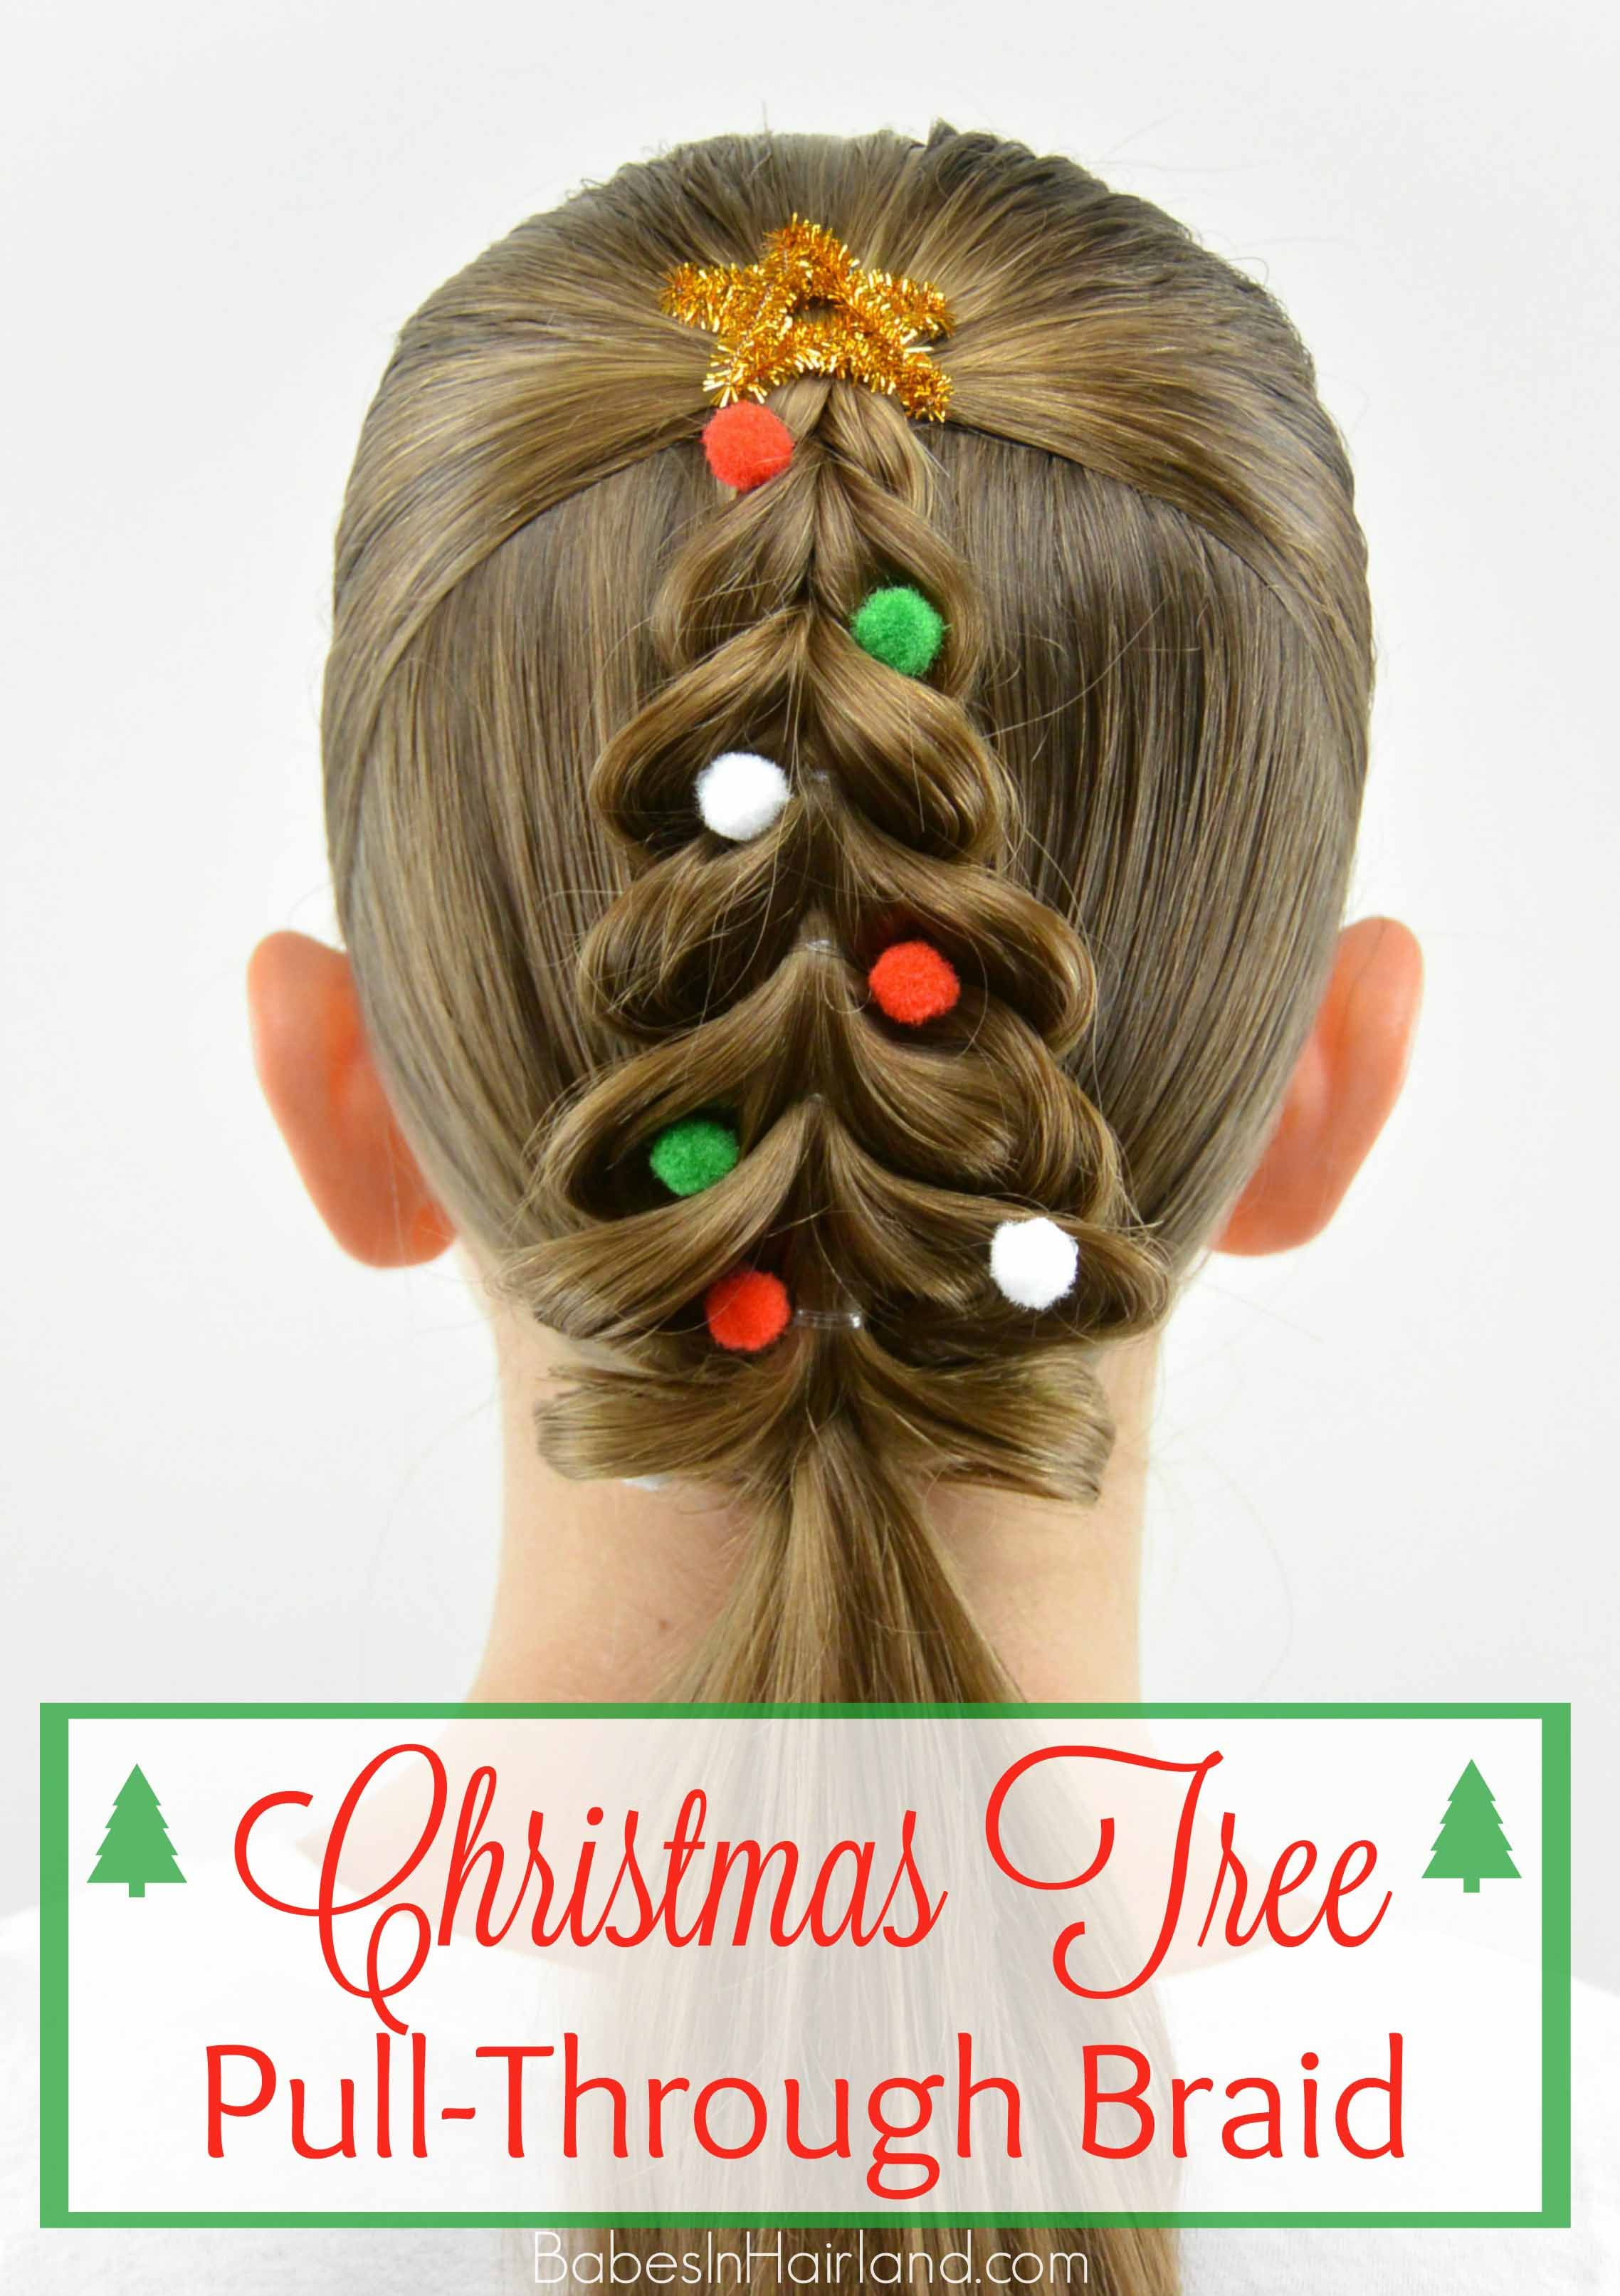 Christmas Tree Pull-Through Braid (Babes In Hairland)